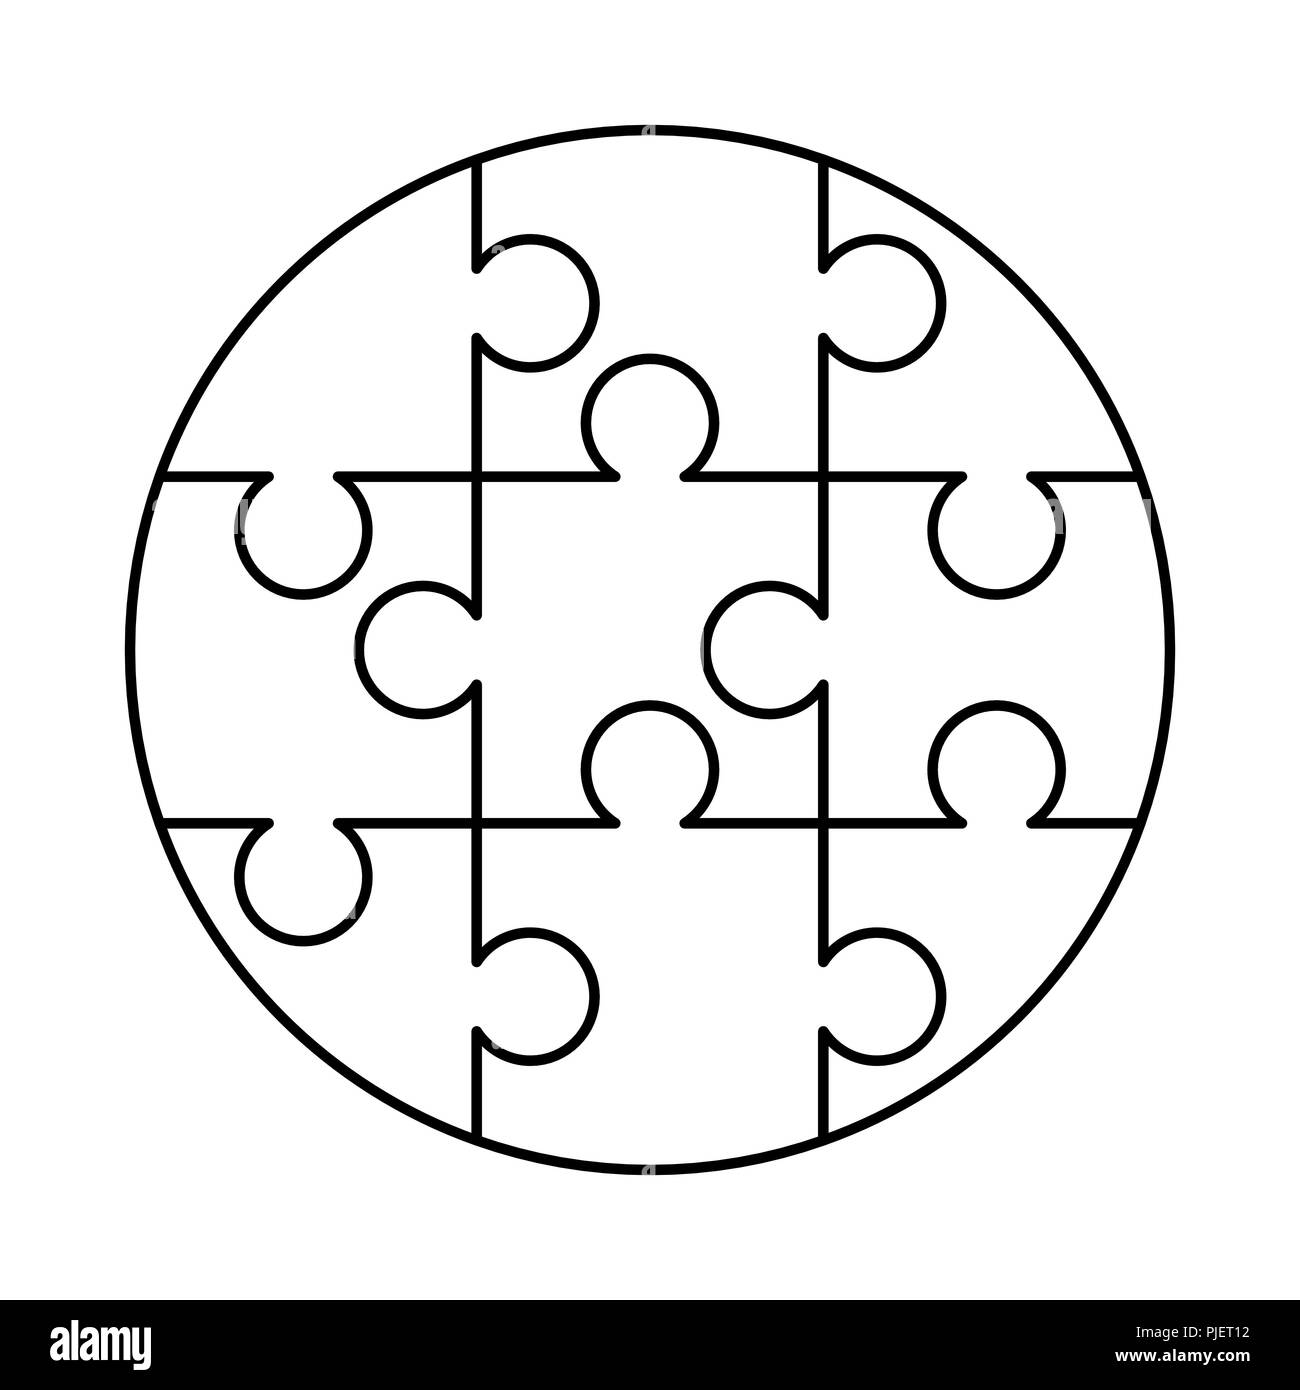 9 White Puzzles Pieces Arranged In A Round Shape Jigsaw Puzzle Template Ready For Print